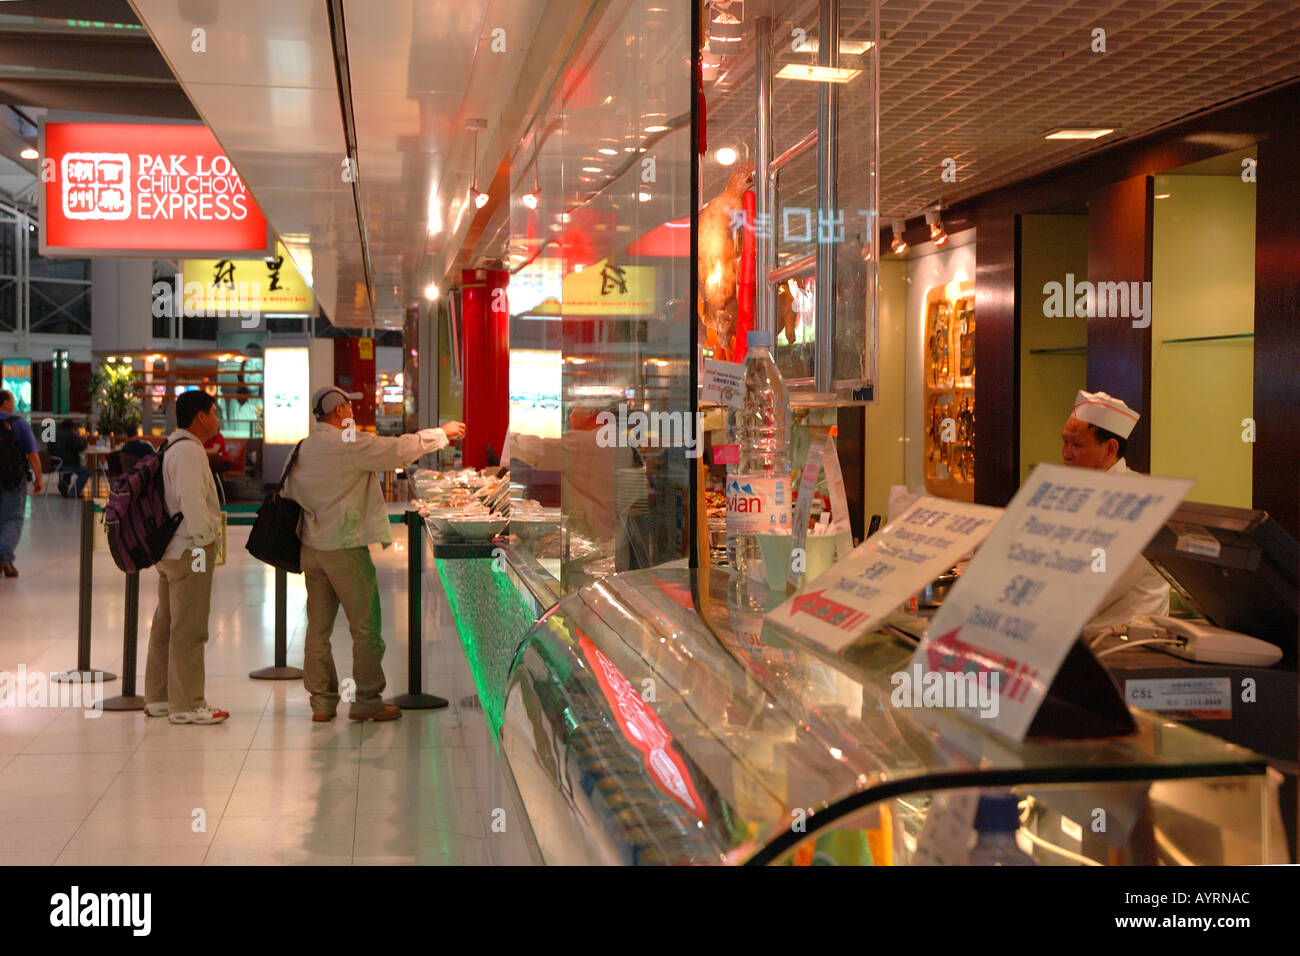 Fast food counter at Hong Kong's International Airport - Stock Image